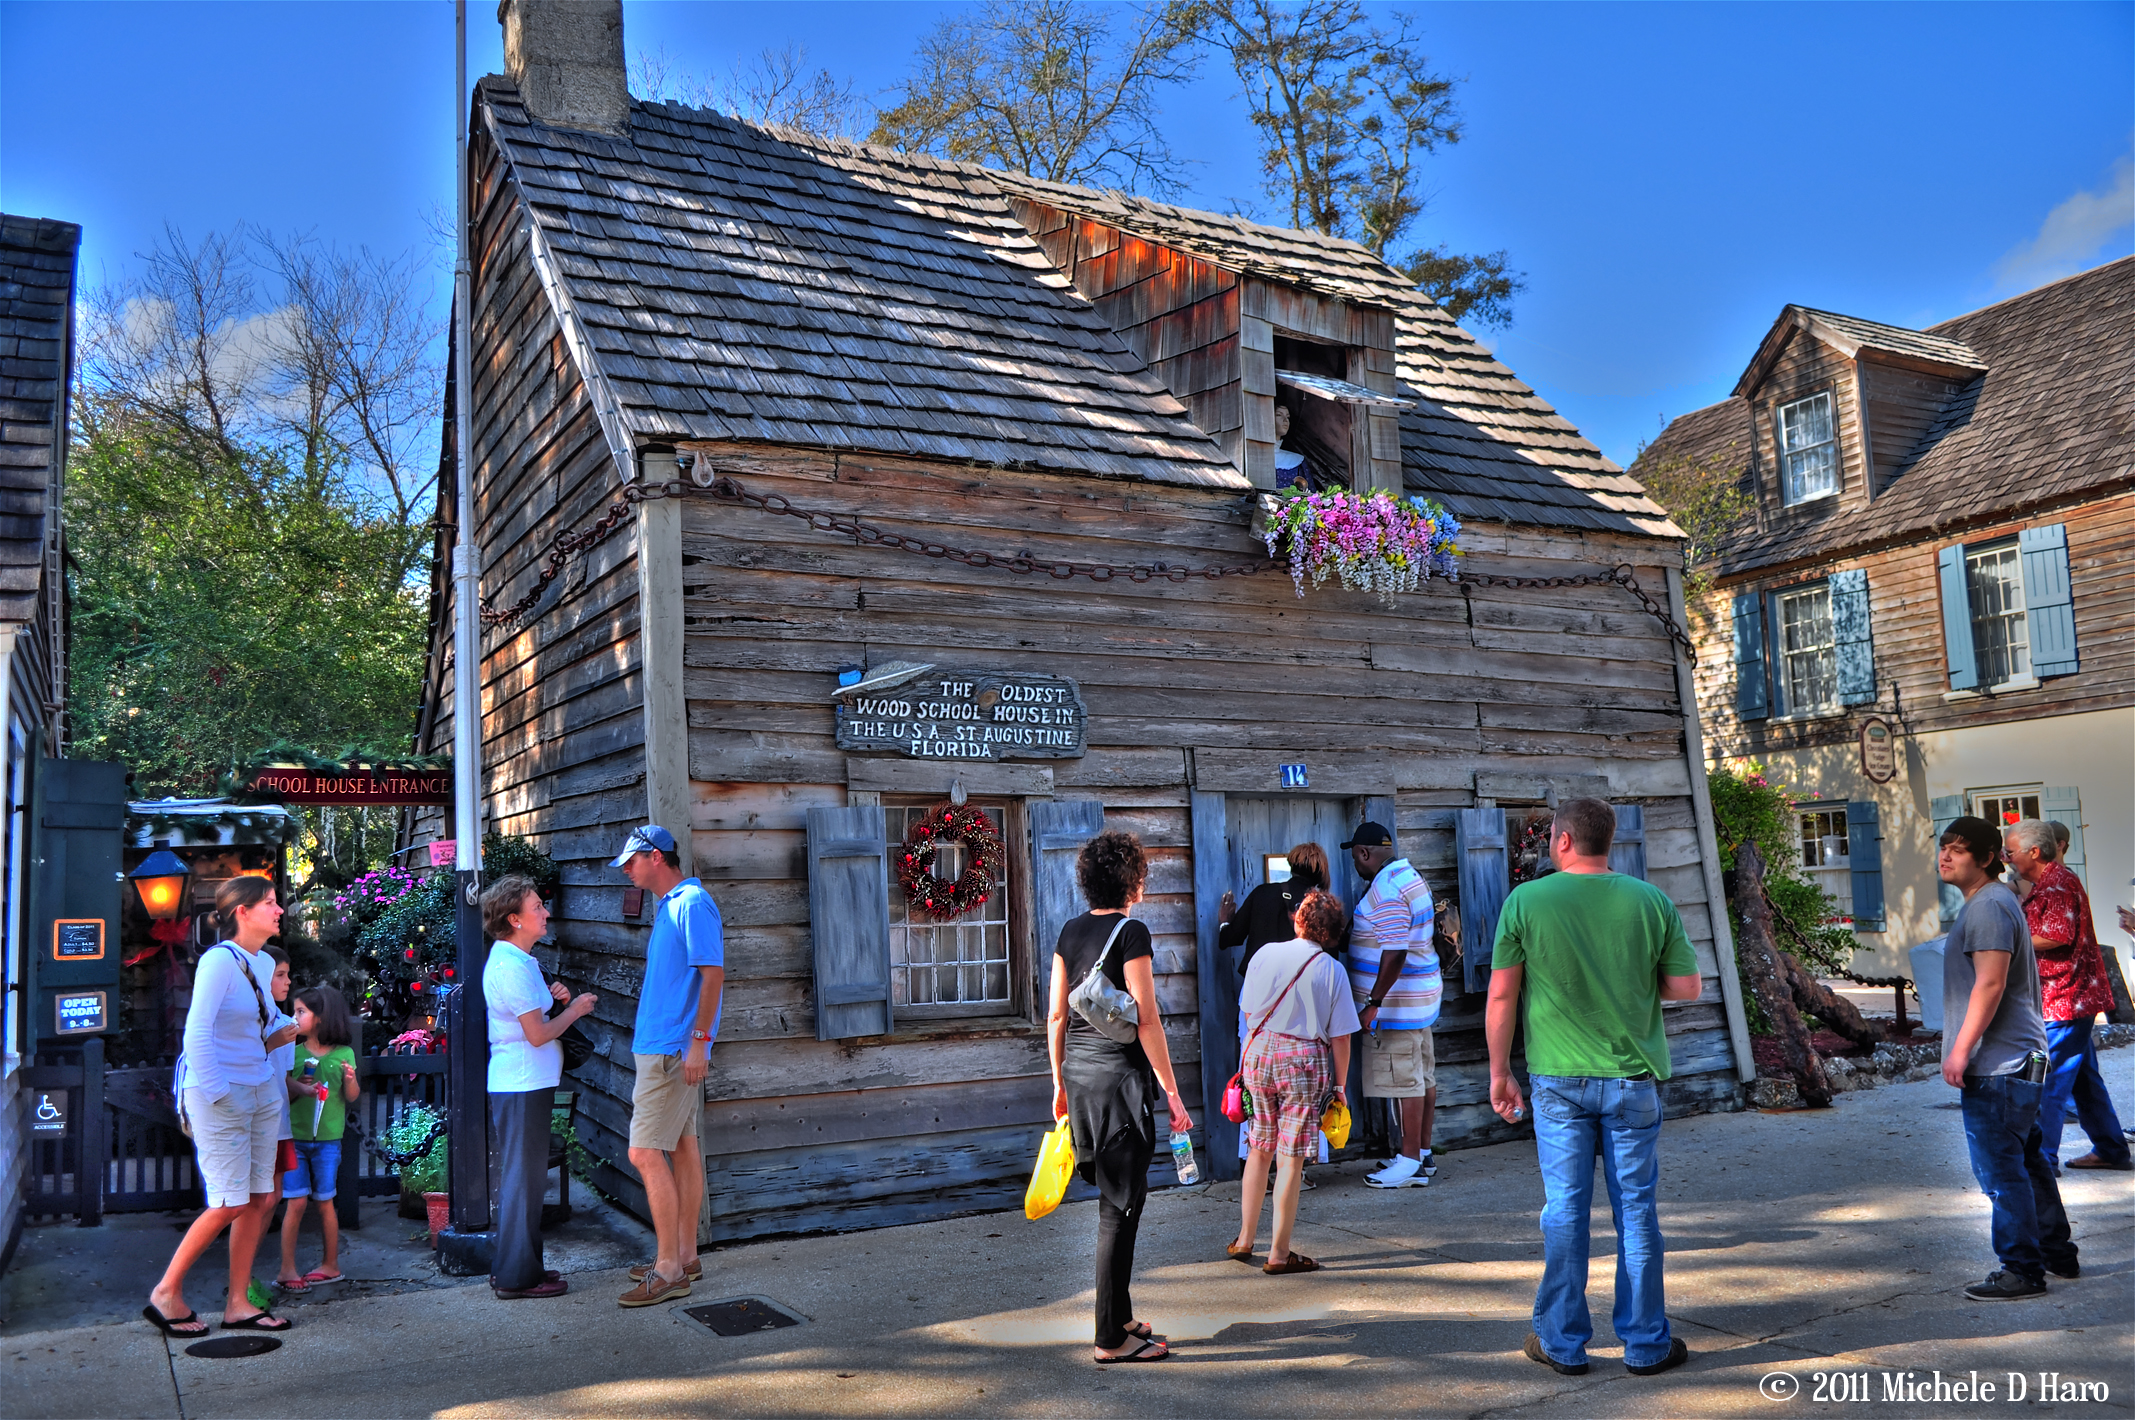 The Oldest Schoolhouse